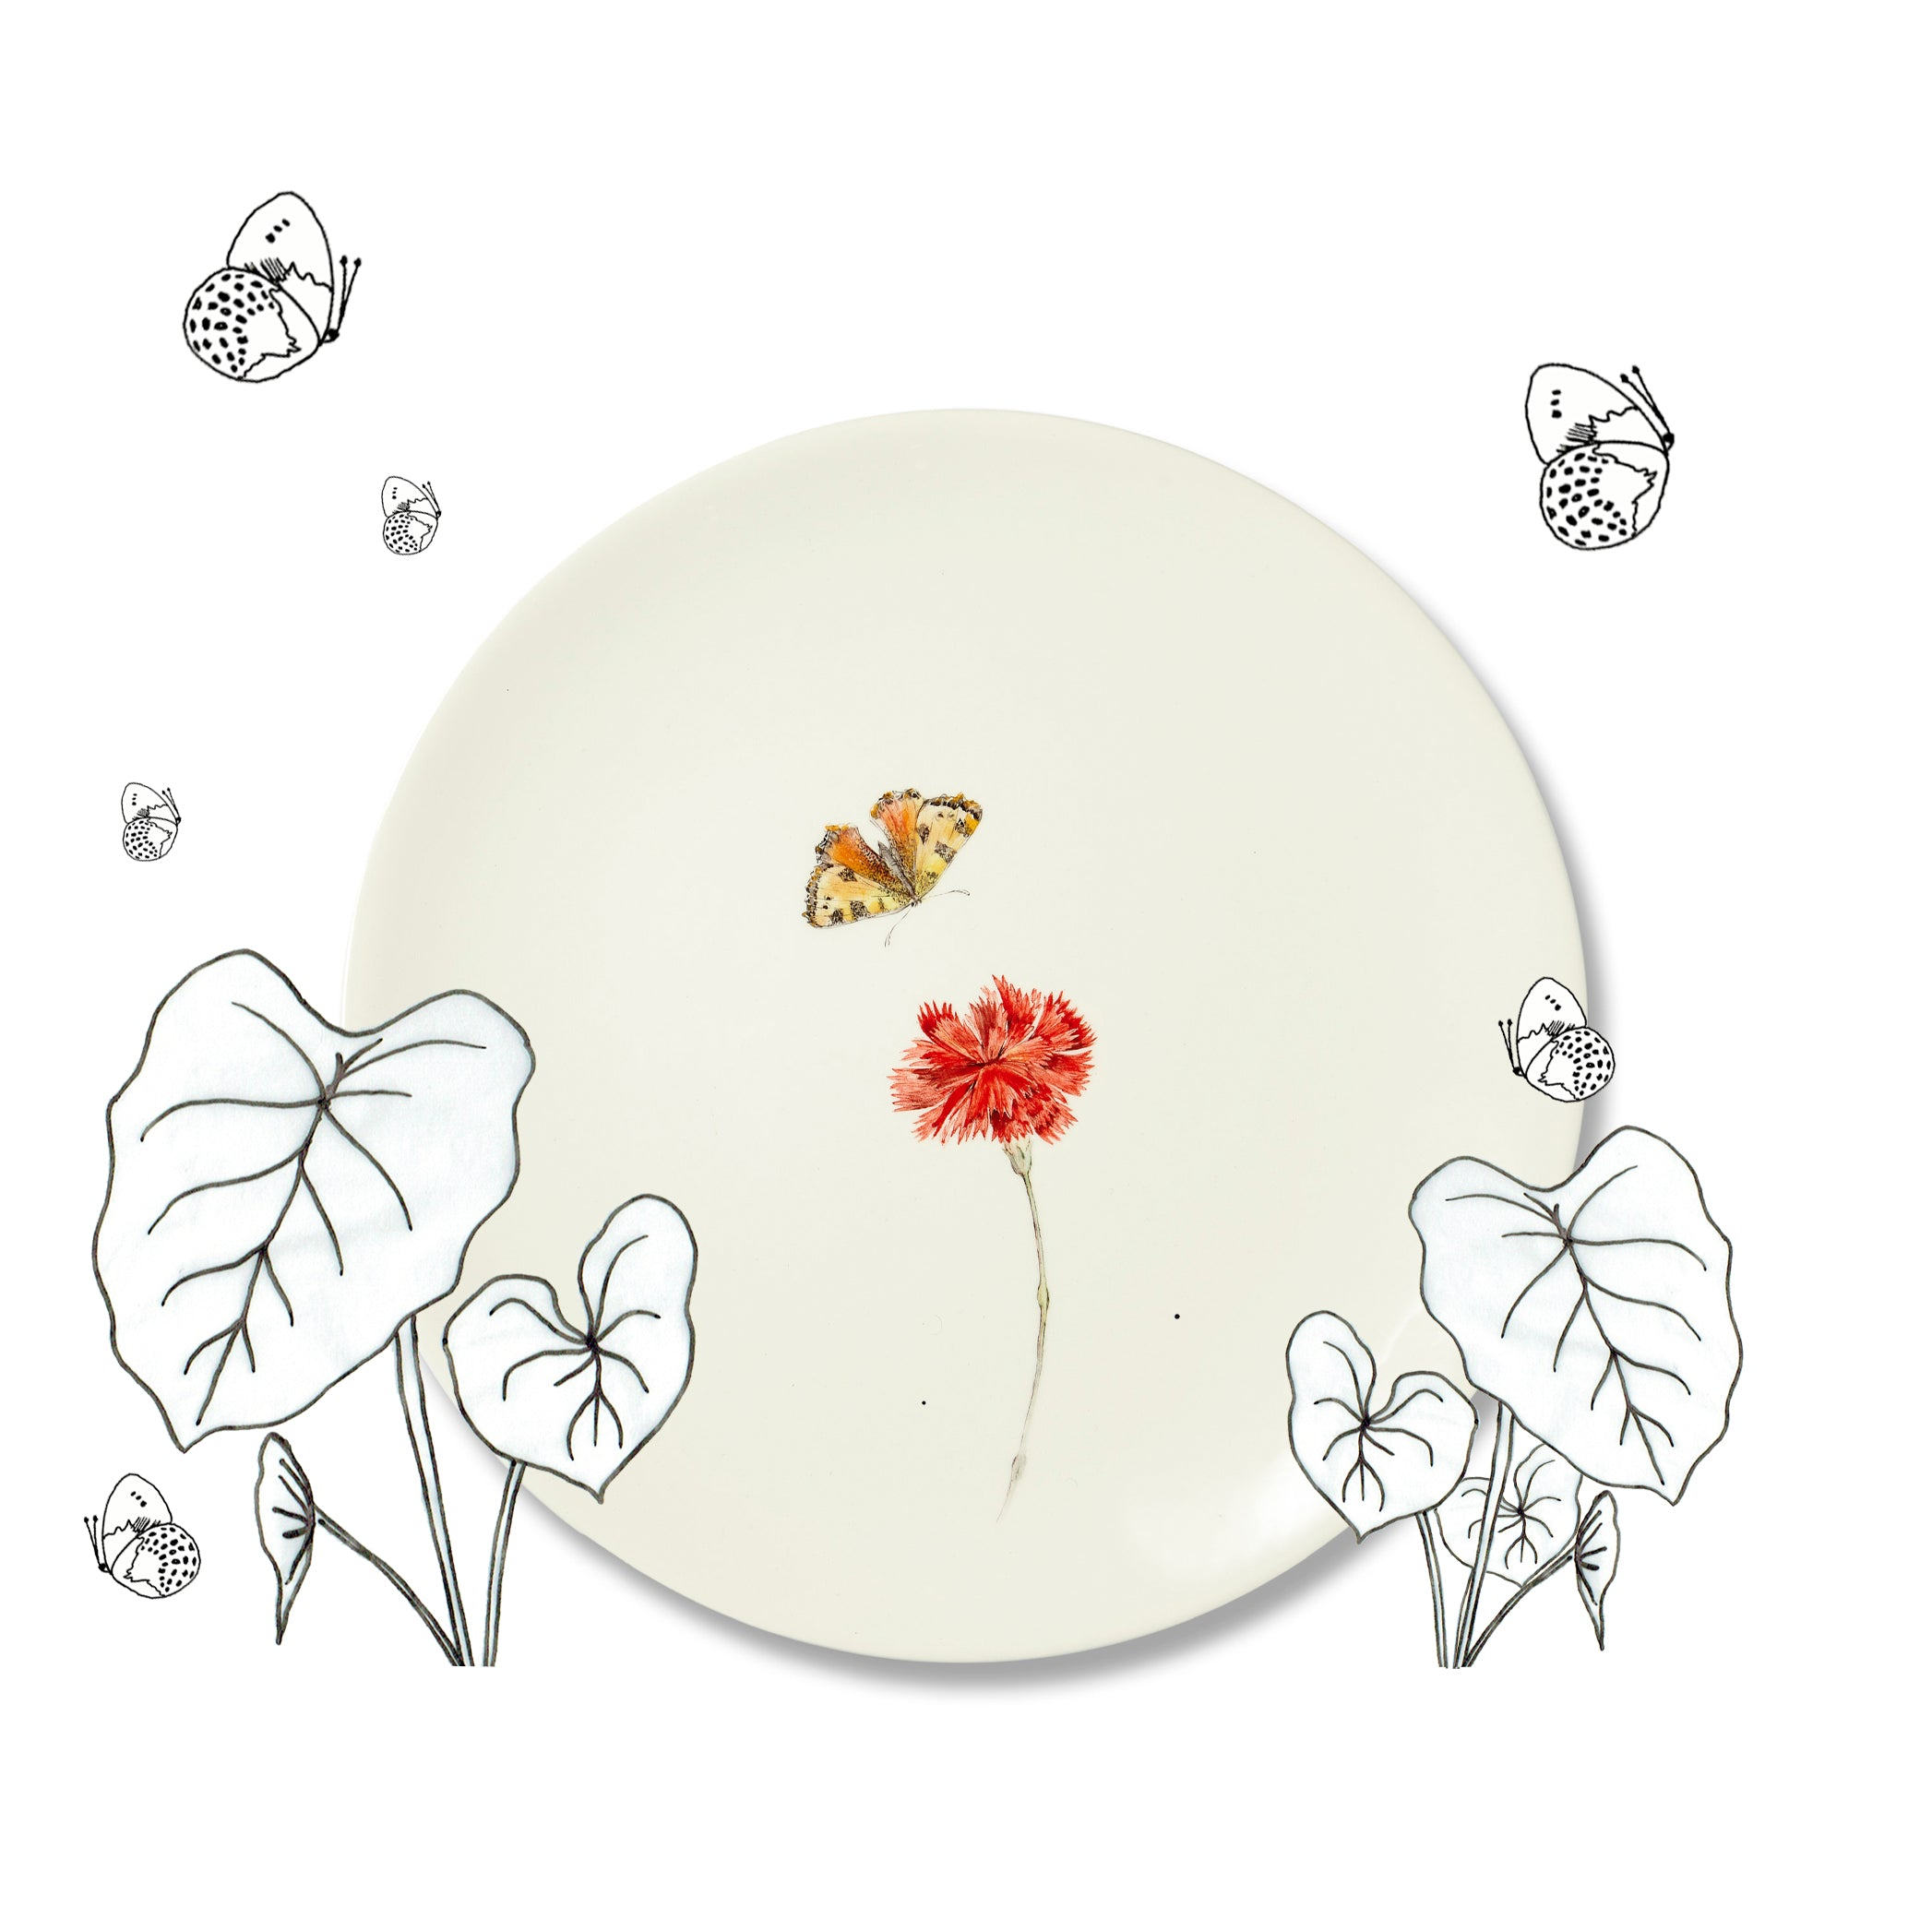 Bloom Carnation Dinner Plate, 25cm